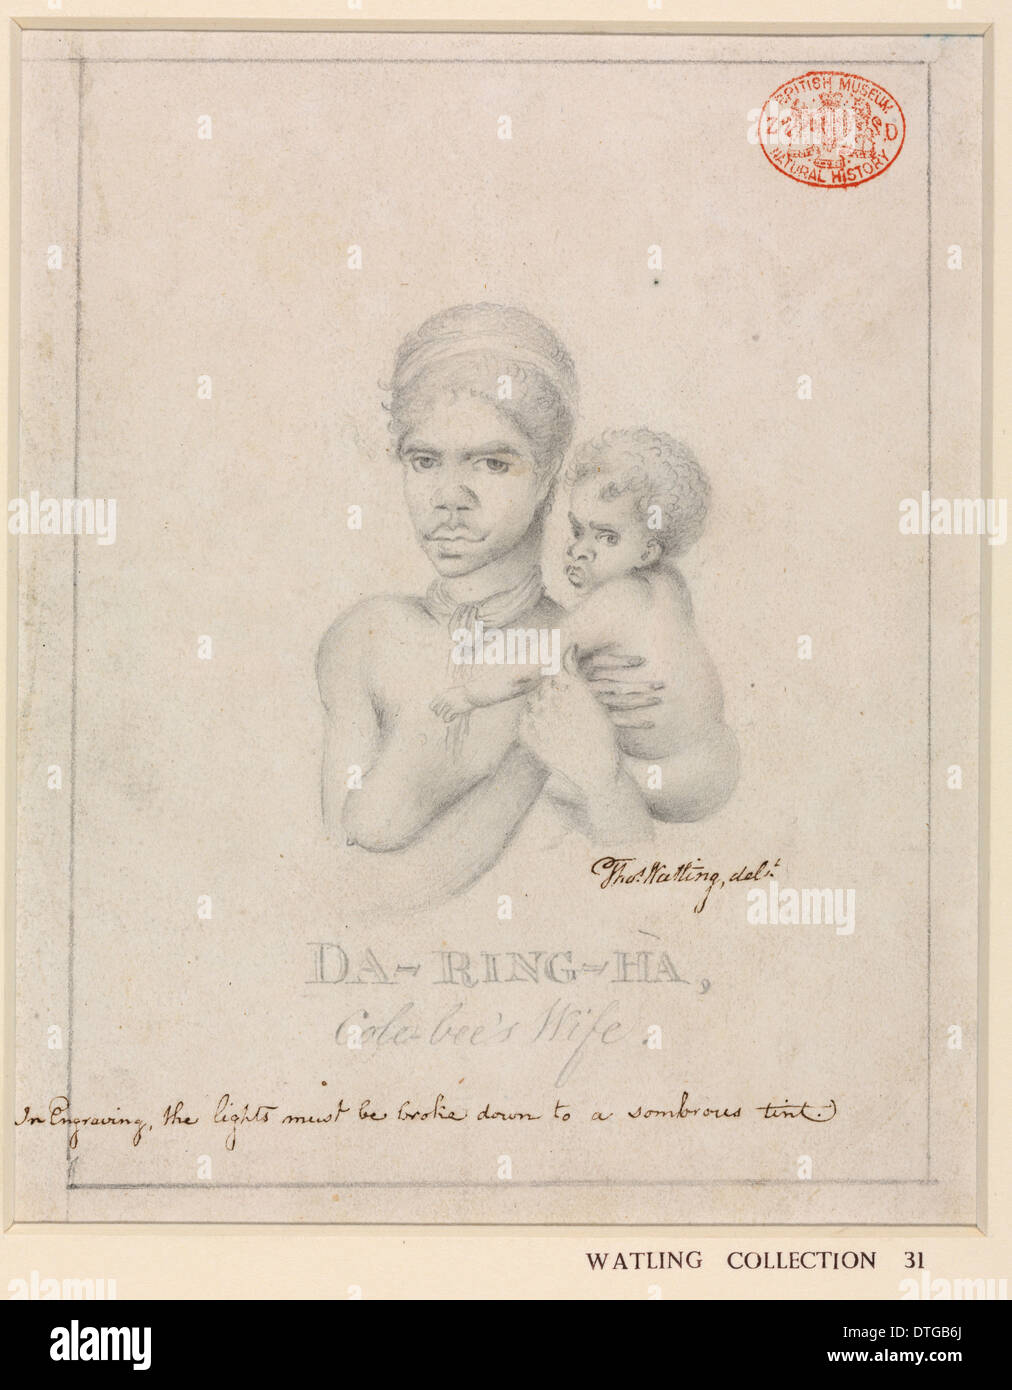 Portrait of an Aboriginal woman, named Da-ring-ha, and a child - Stock Image